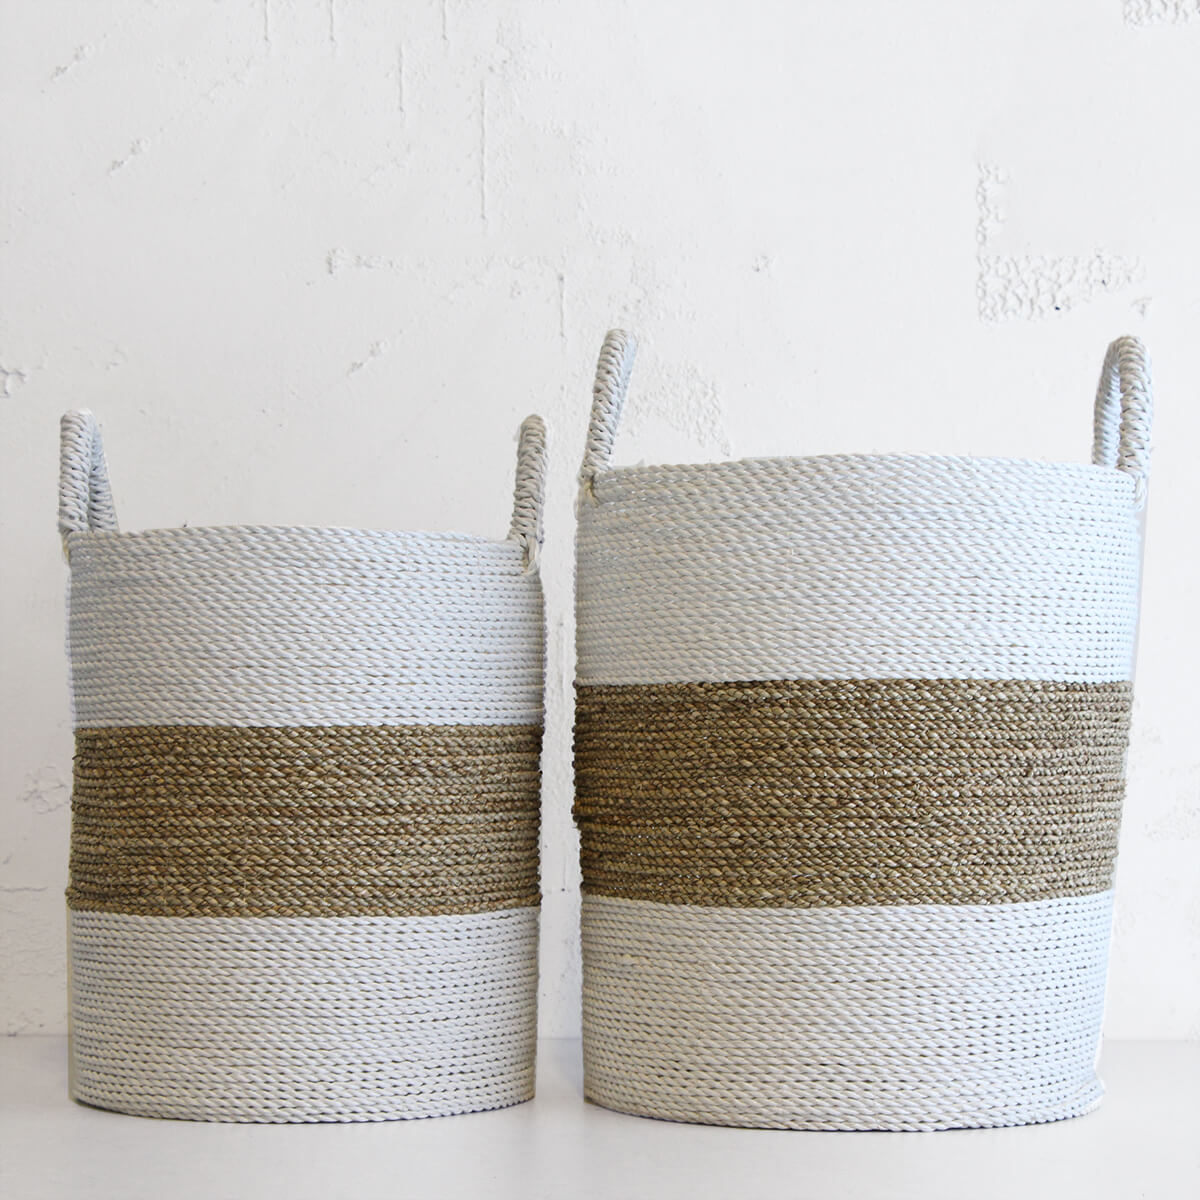 SEAGRASS STORAGE BASKET | WHITE + NATURAL STRIPE | TALL + MEDIUM PACKAGE